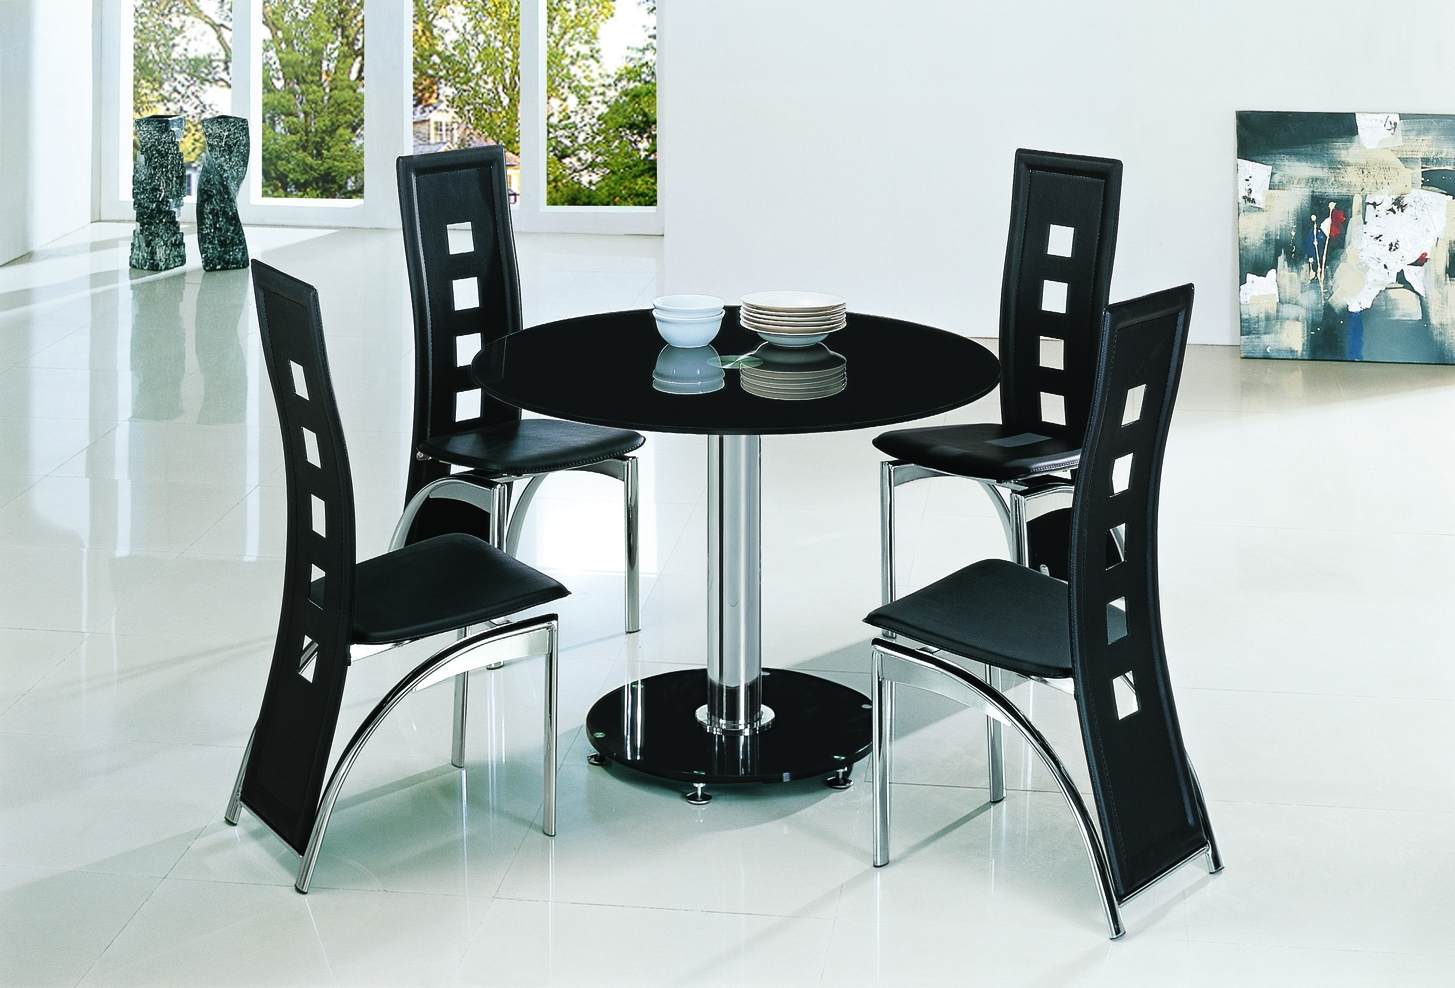 Curved Glass Dining Tables Within Well Liked Planet Black Round Glass Dining Table With Alison Chairs Curved Back (View 21 of 25)